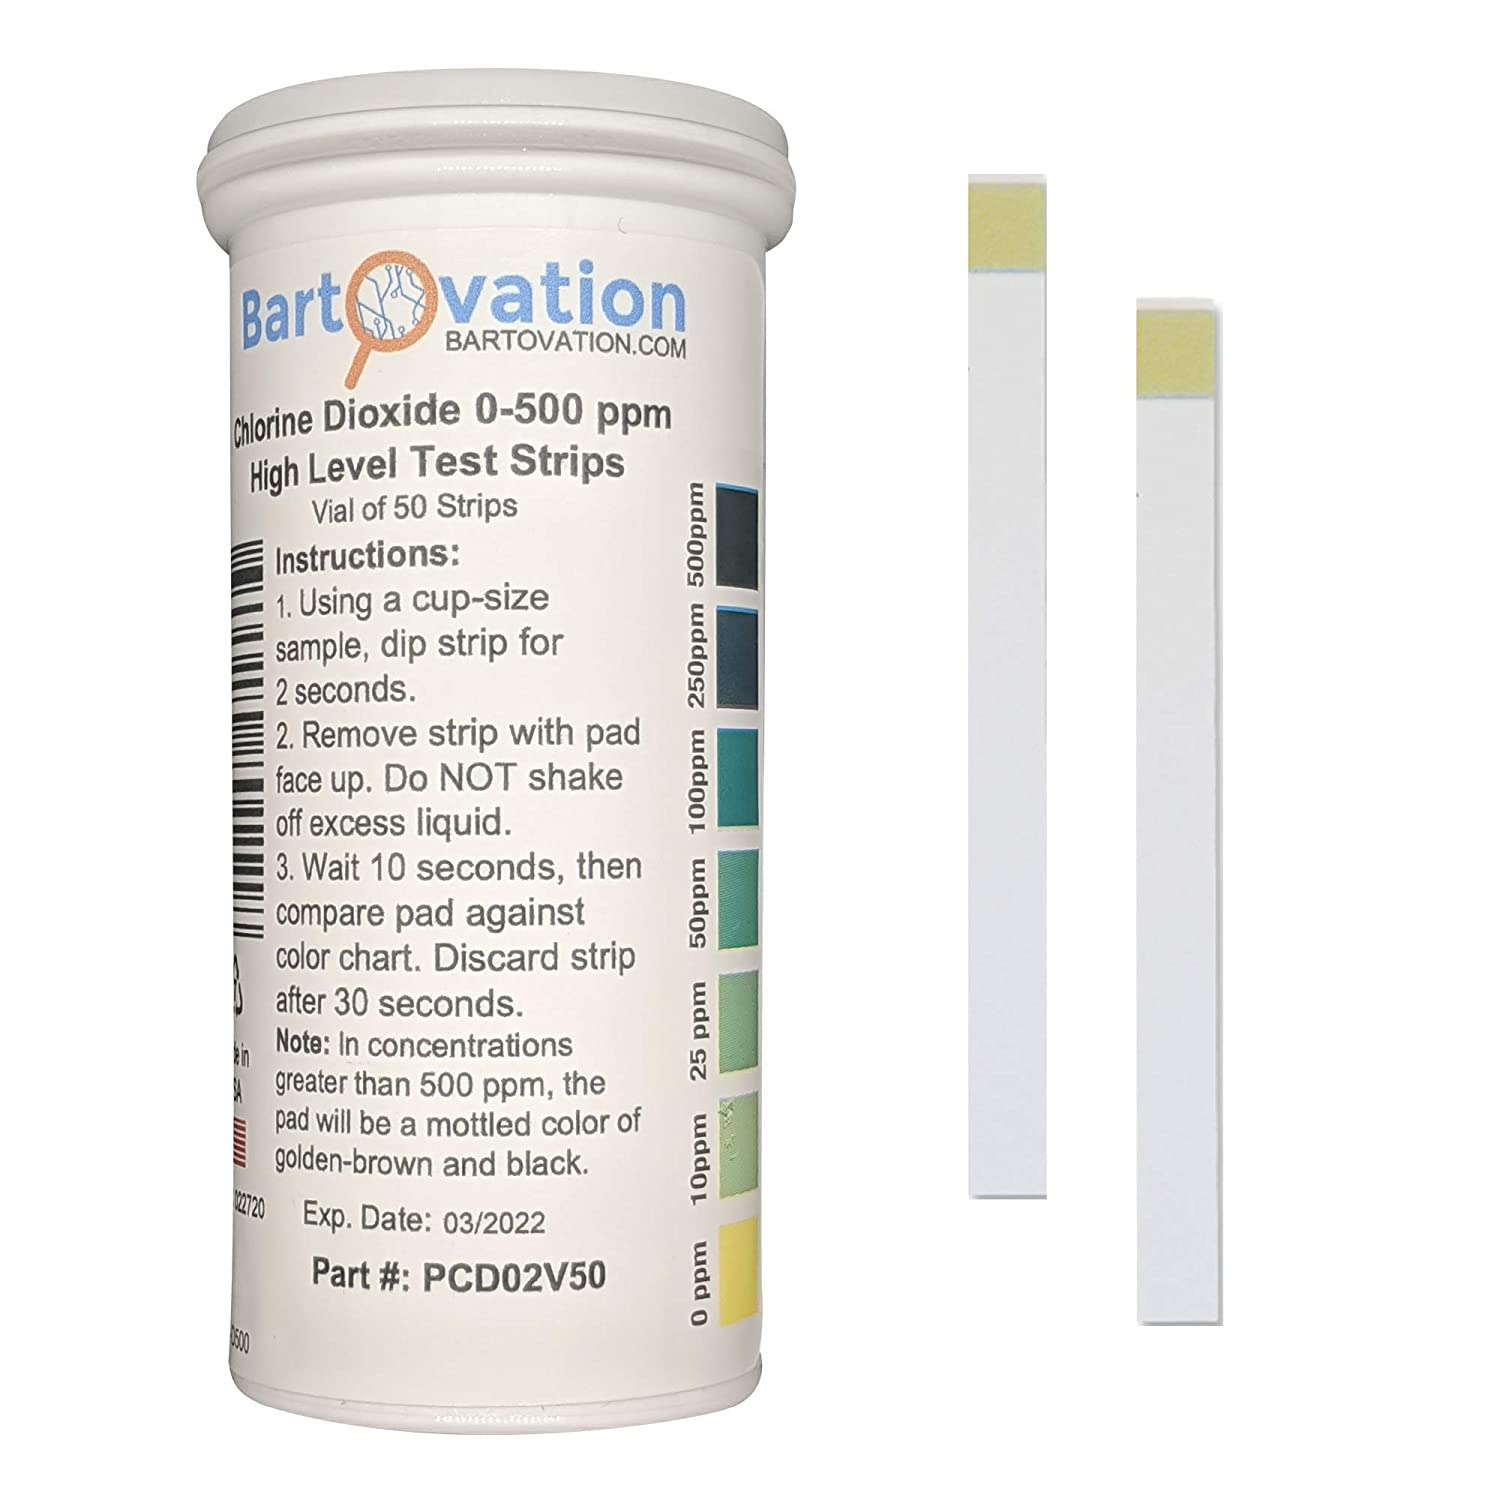 Chlorine Dioxide Single Factor Test Strips, 0-500 ppm [Vial of 50 Strips]